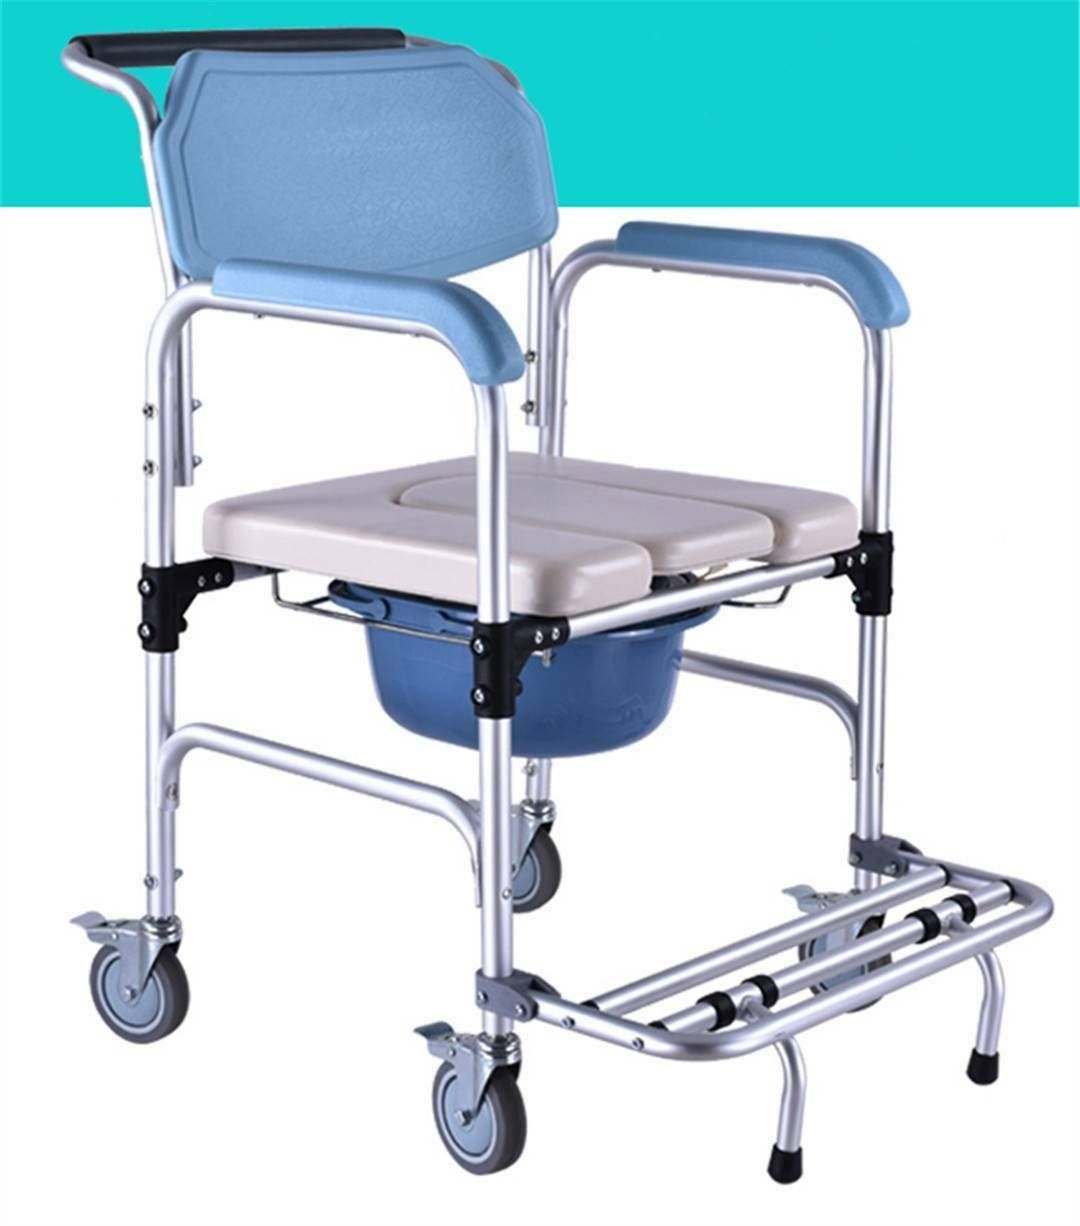 Us 3 In 1 Commode Wheelchair Bedside Toilet Shower Seat Bathroom Rolling Chair Ebay Shower Commode Chair Shower Seat Commode Chair